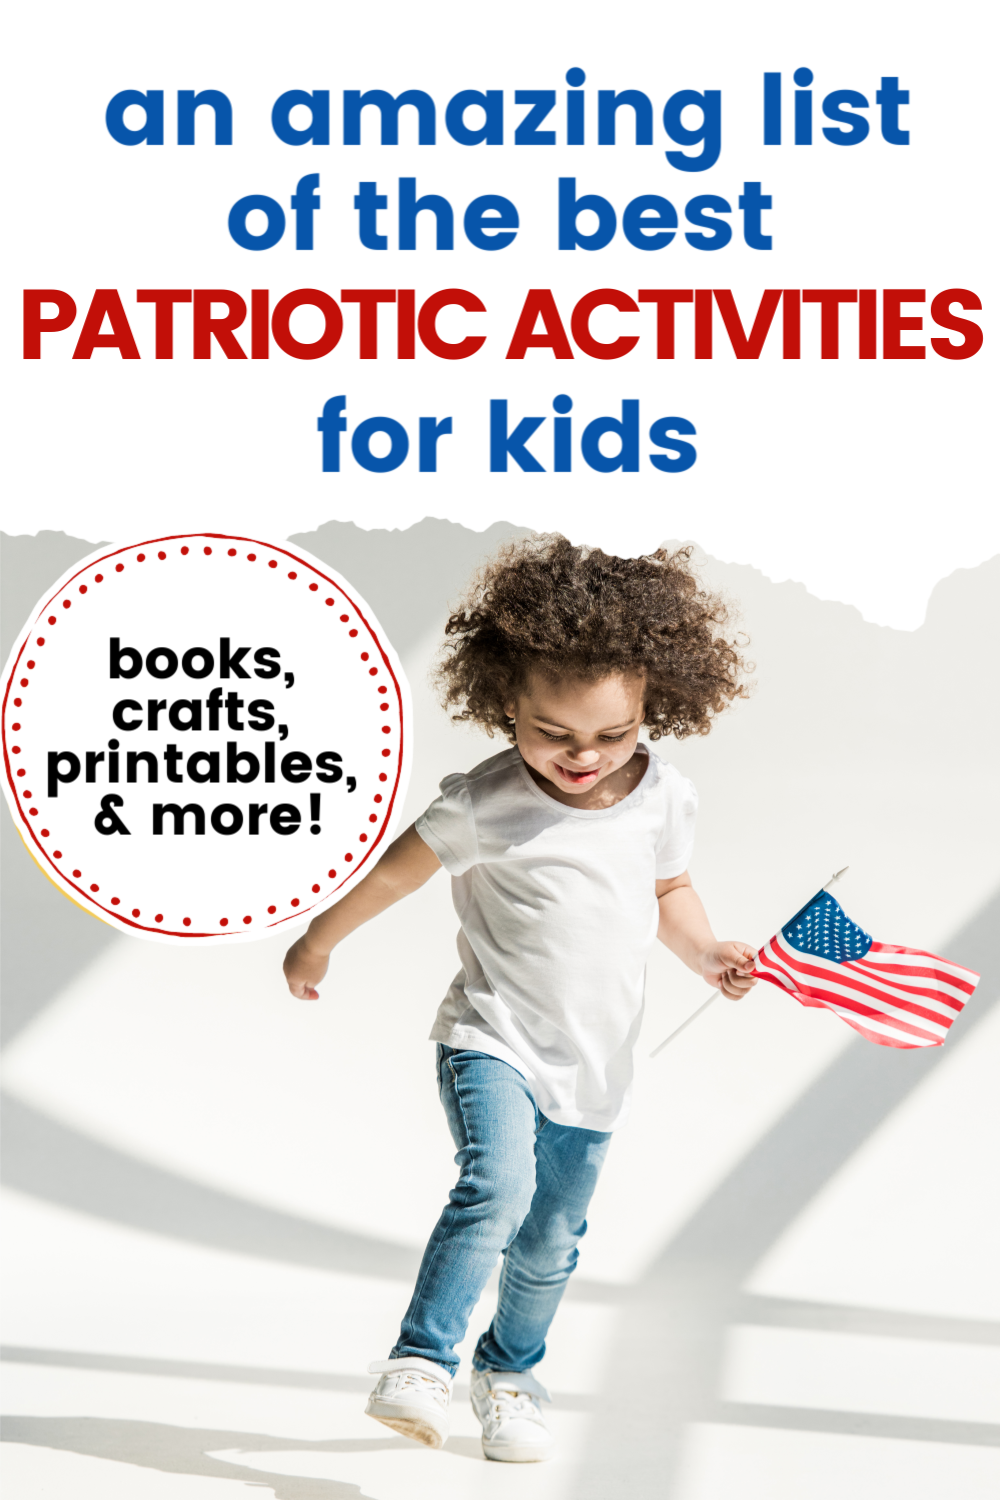 Check out this amazing collection of patriotic activities for preschoolers. They're perfect for Fourth of July, Veterans Day, and Memorial Day!